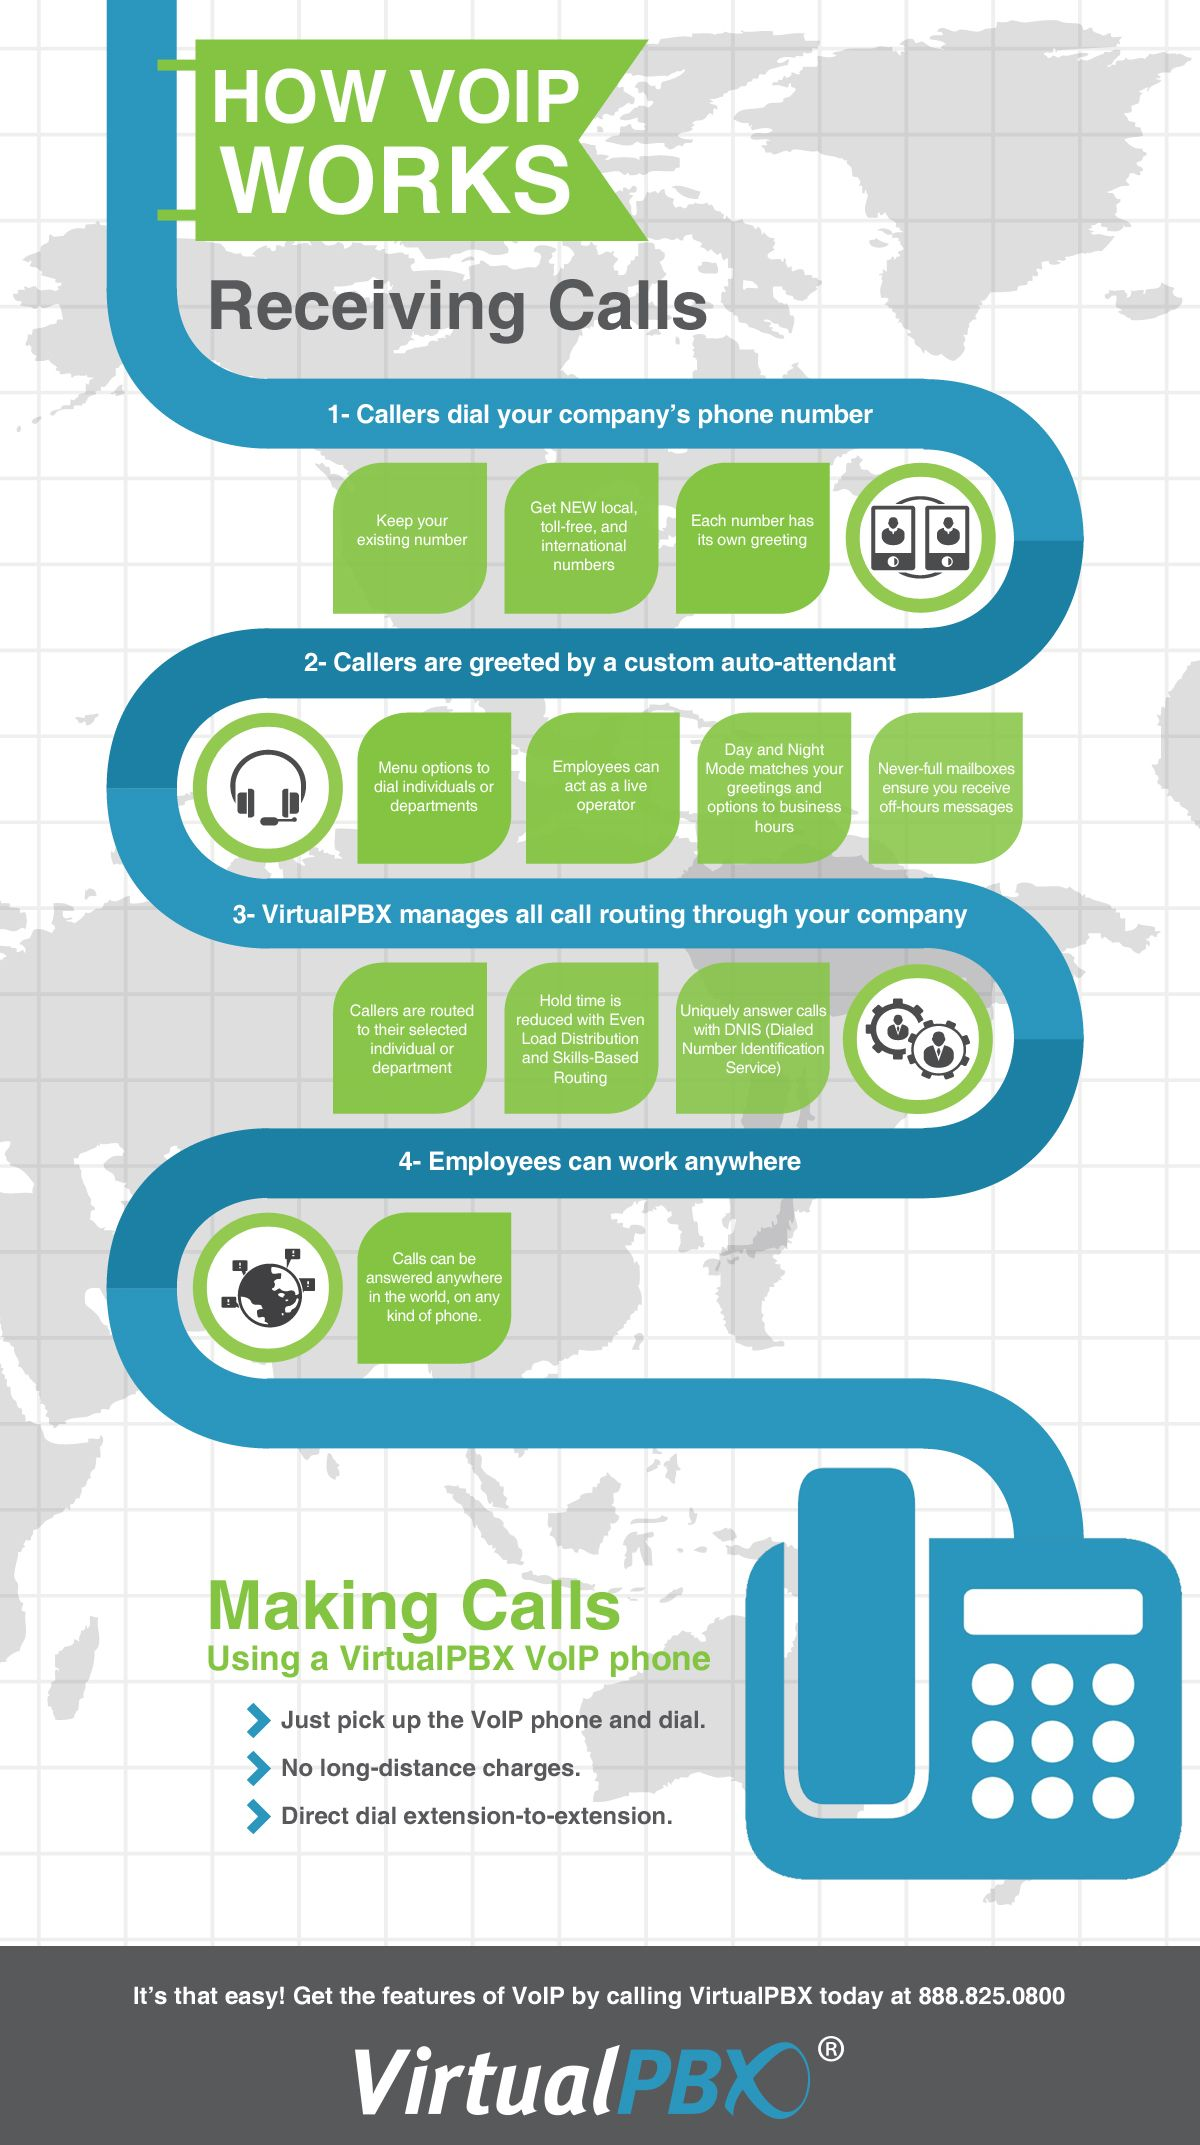 How to make and receive calls using voip technology in the virtualpbx a pioneer in voip business phone systems offers the most features highest reliability best value kristyandbryce Gallery